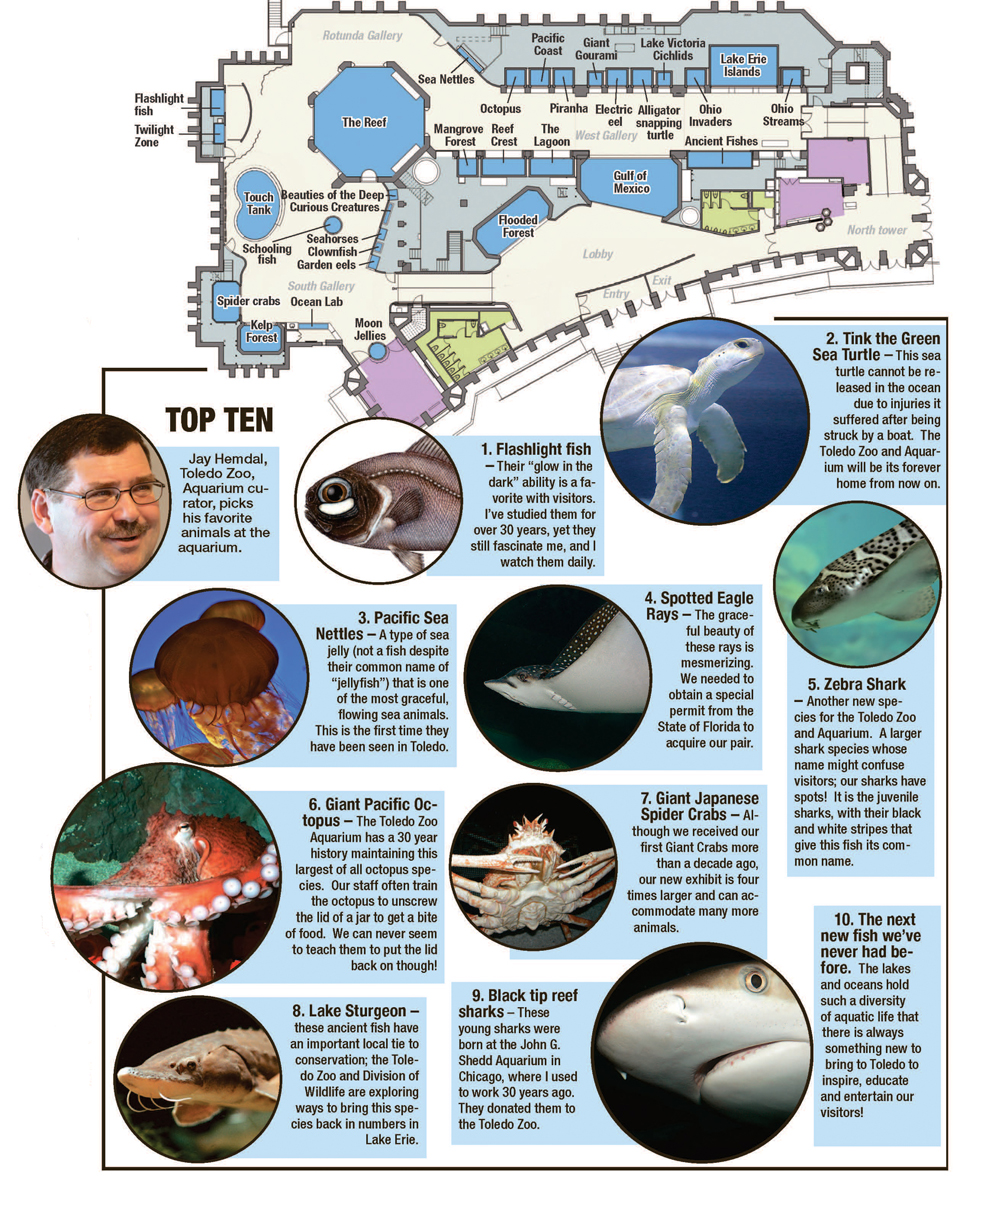 new aquarium at the toledo zoo sea ing is believing the blade after 25 million and 2frac12 years of renovation the zoo opens its latest exhibit friday morning and it wants you to know this isn t your father s or even